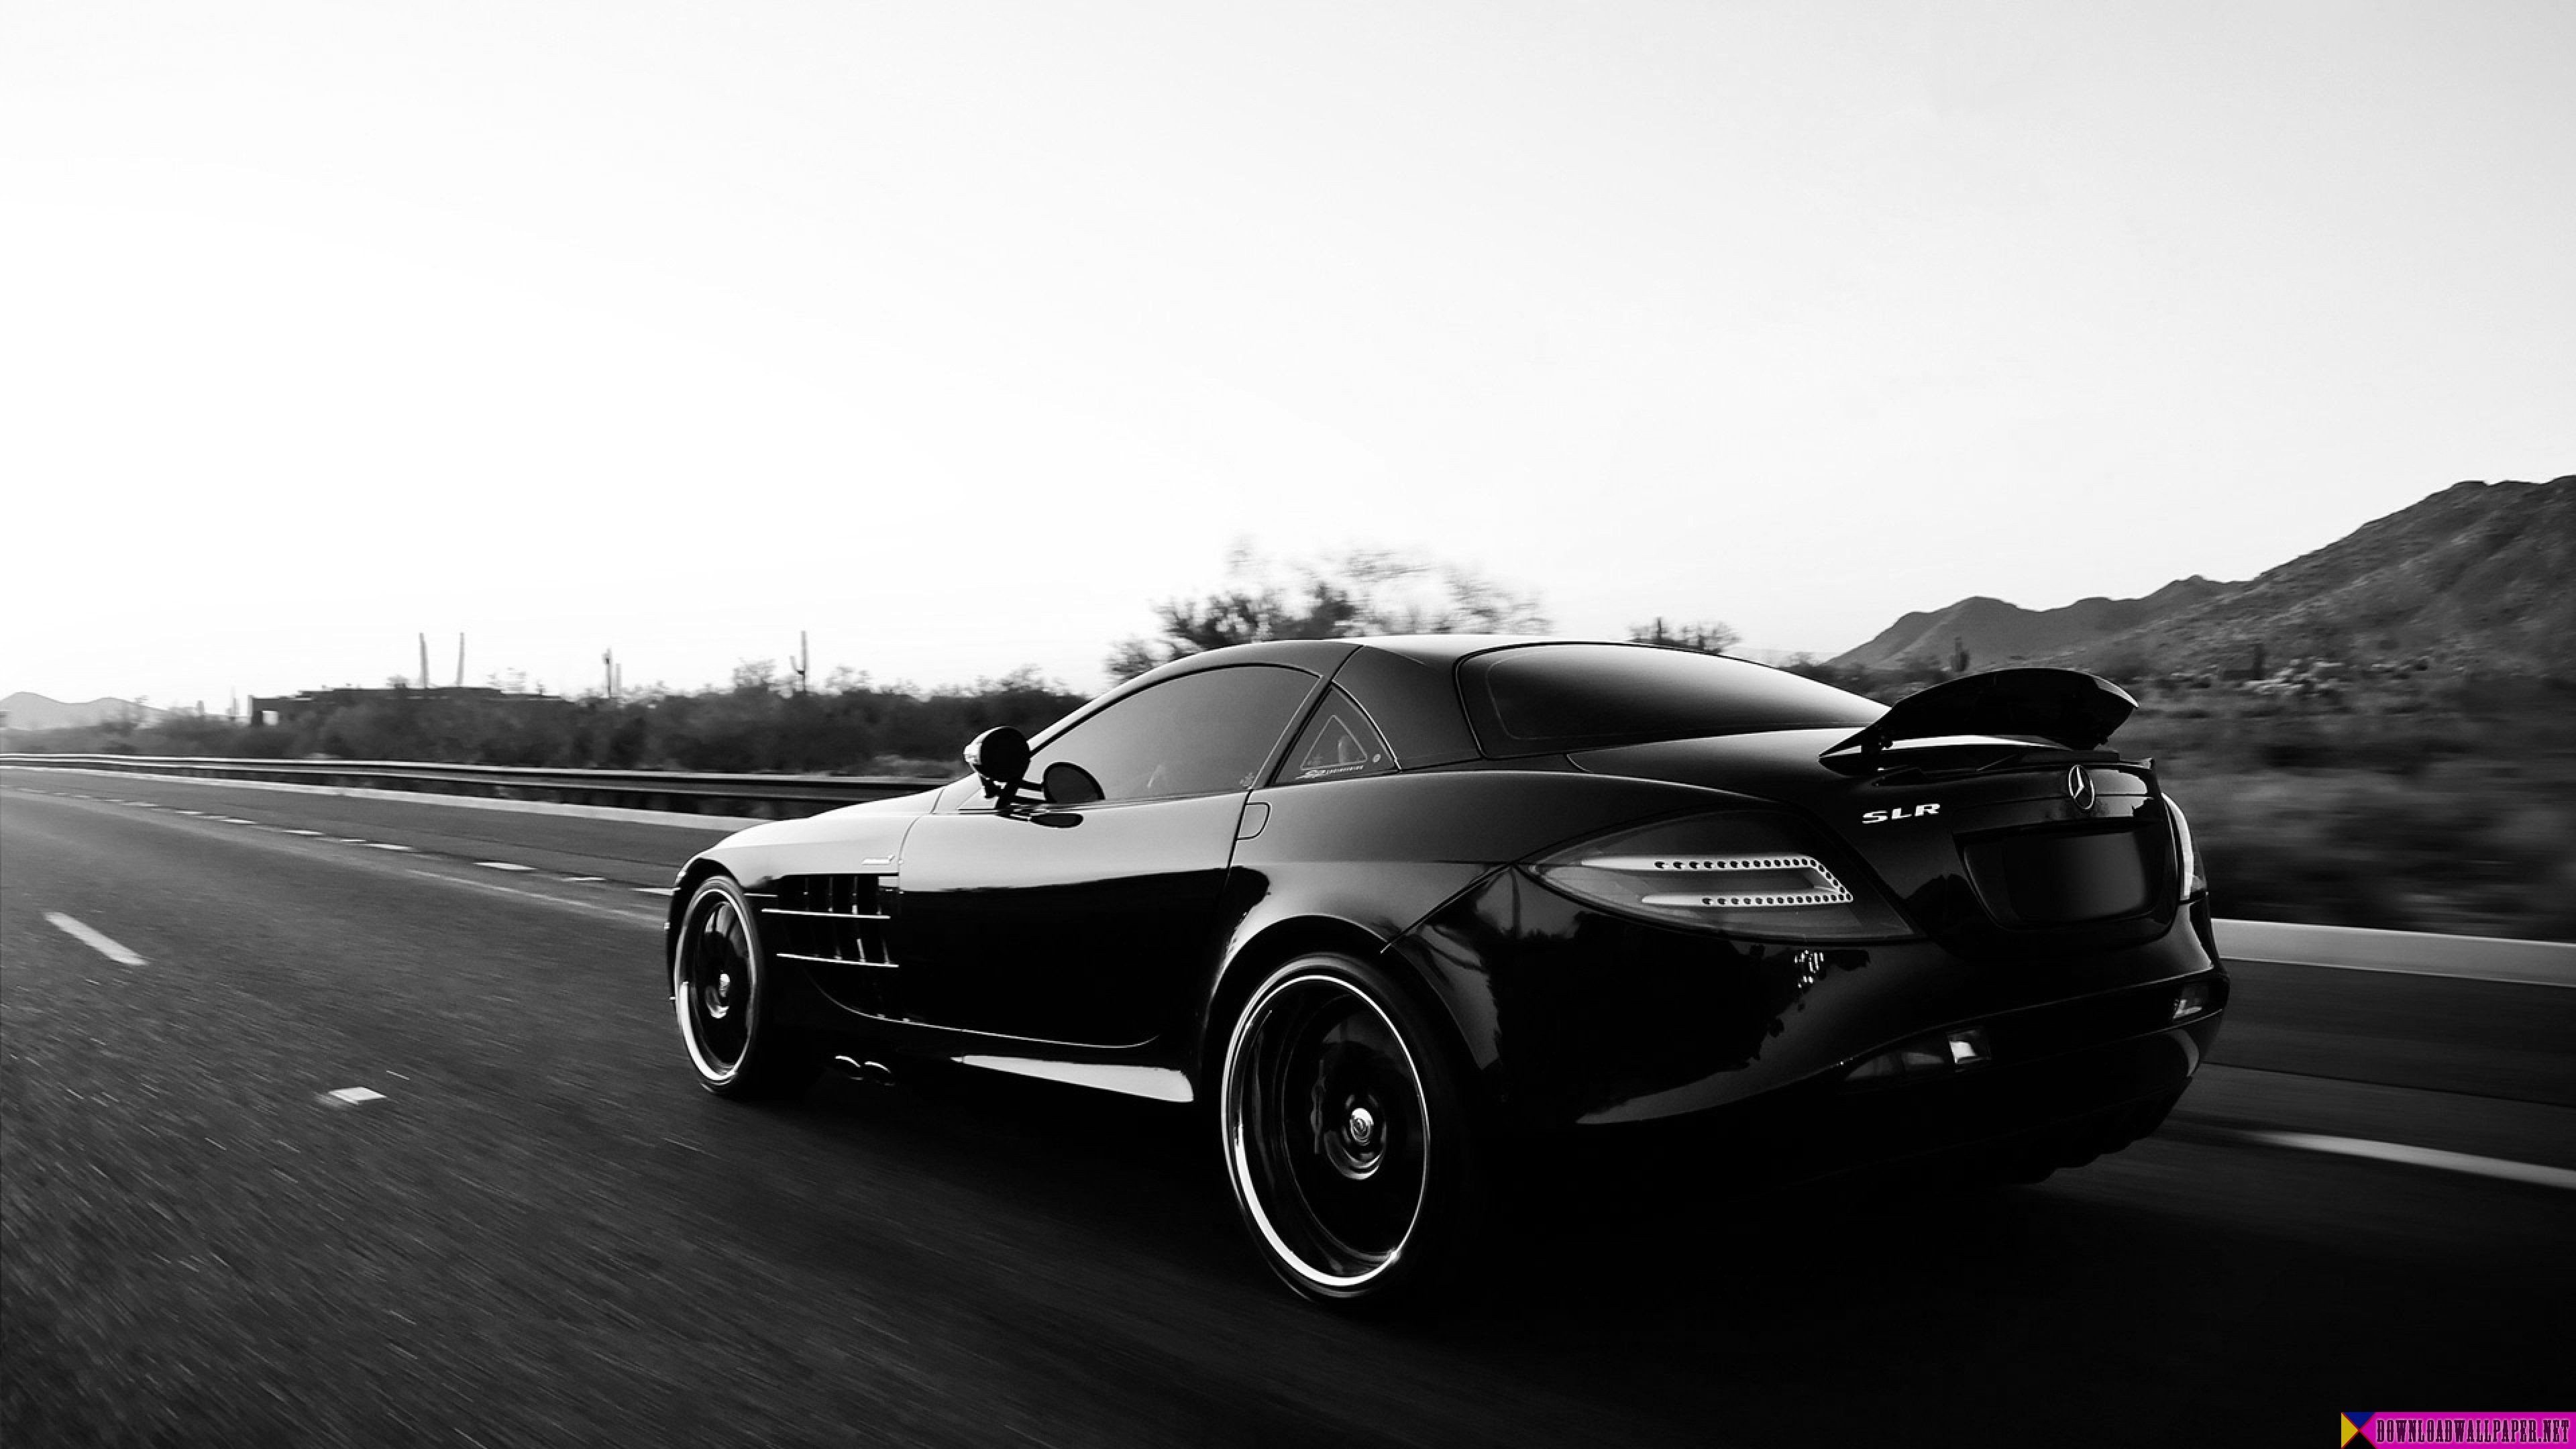 Wallpaper Mercedes Benz Car Black Track Style Full Black Cars Wallpaper 4k 1920x1080 Download Hd Wallpaper Wallpapertip